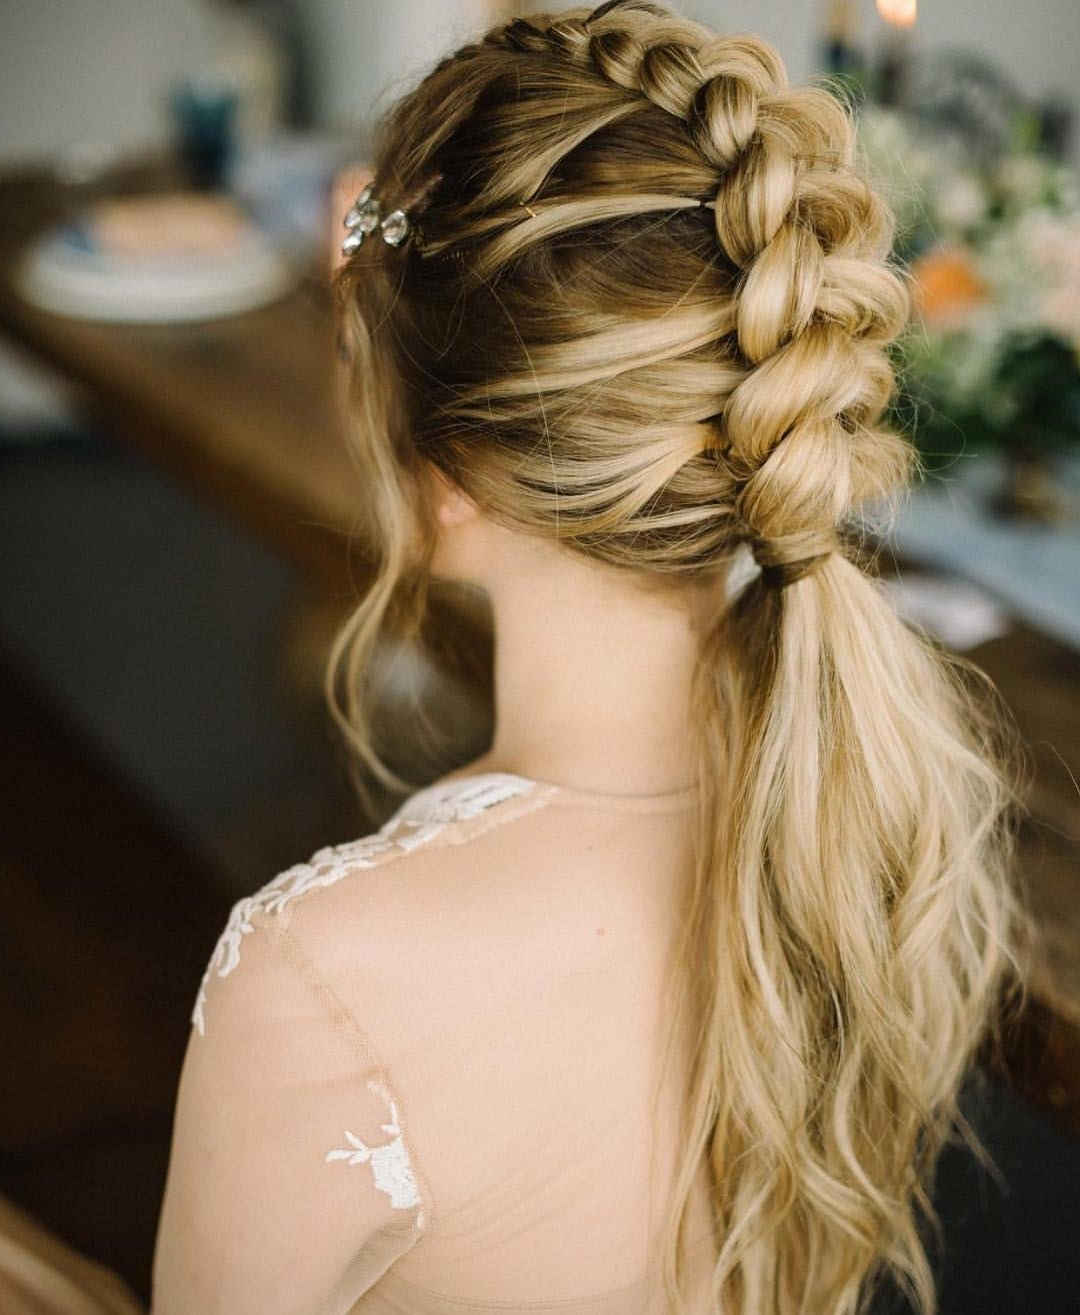 Most Recent Blonde Braided Hairstyles Regarding 10 Braided Hairstyles For Long Hair – Weddings, Festivals & Holiday (View 10 of 15)